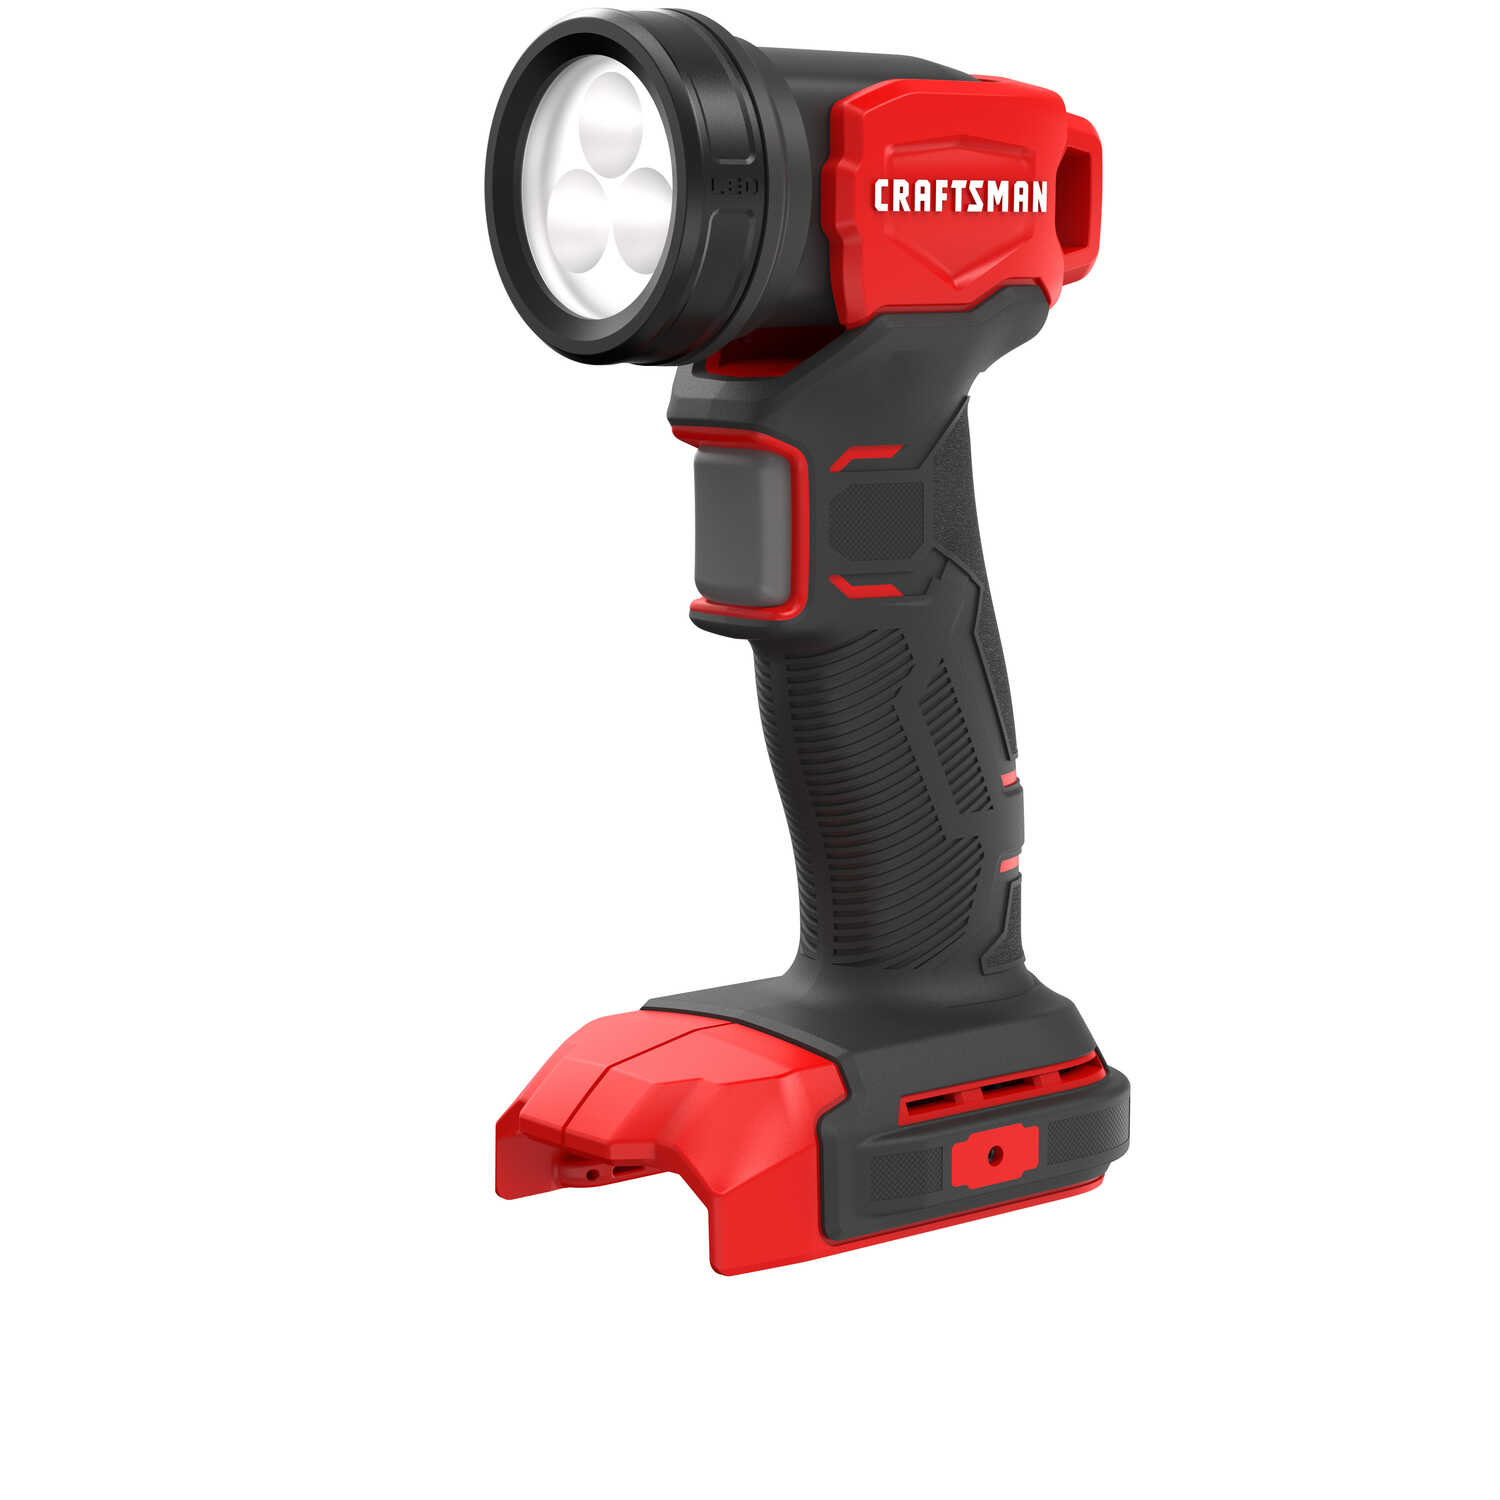 Craftsman  20V MAX  LED  Cordless Work Light  120 lumens 3 lights Indoor and Outdoor